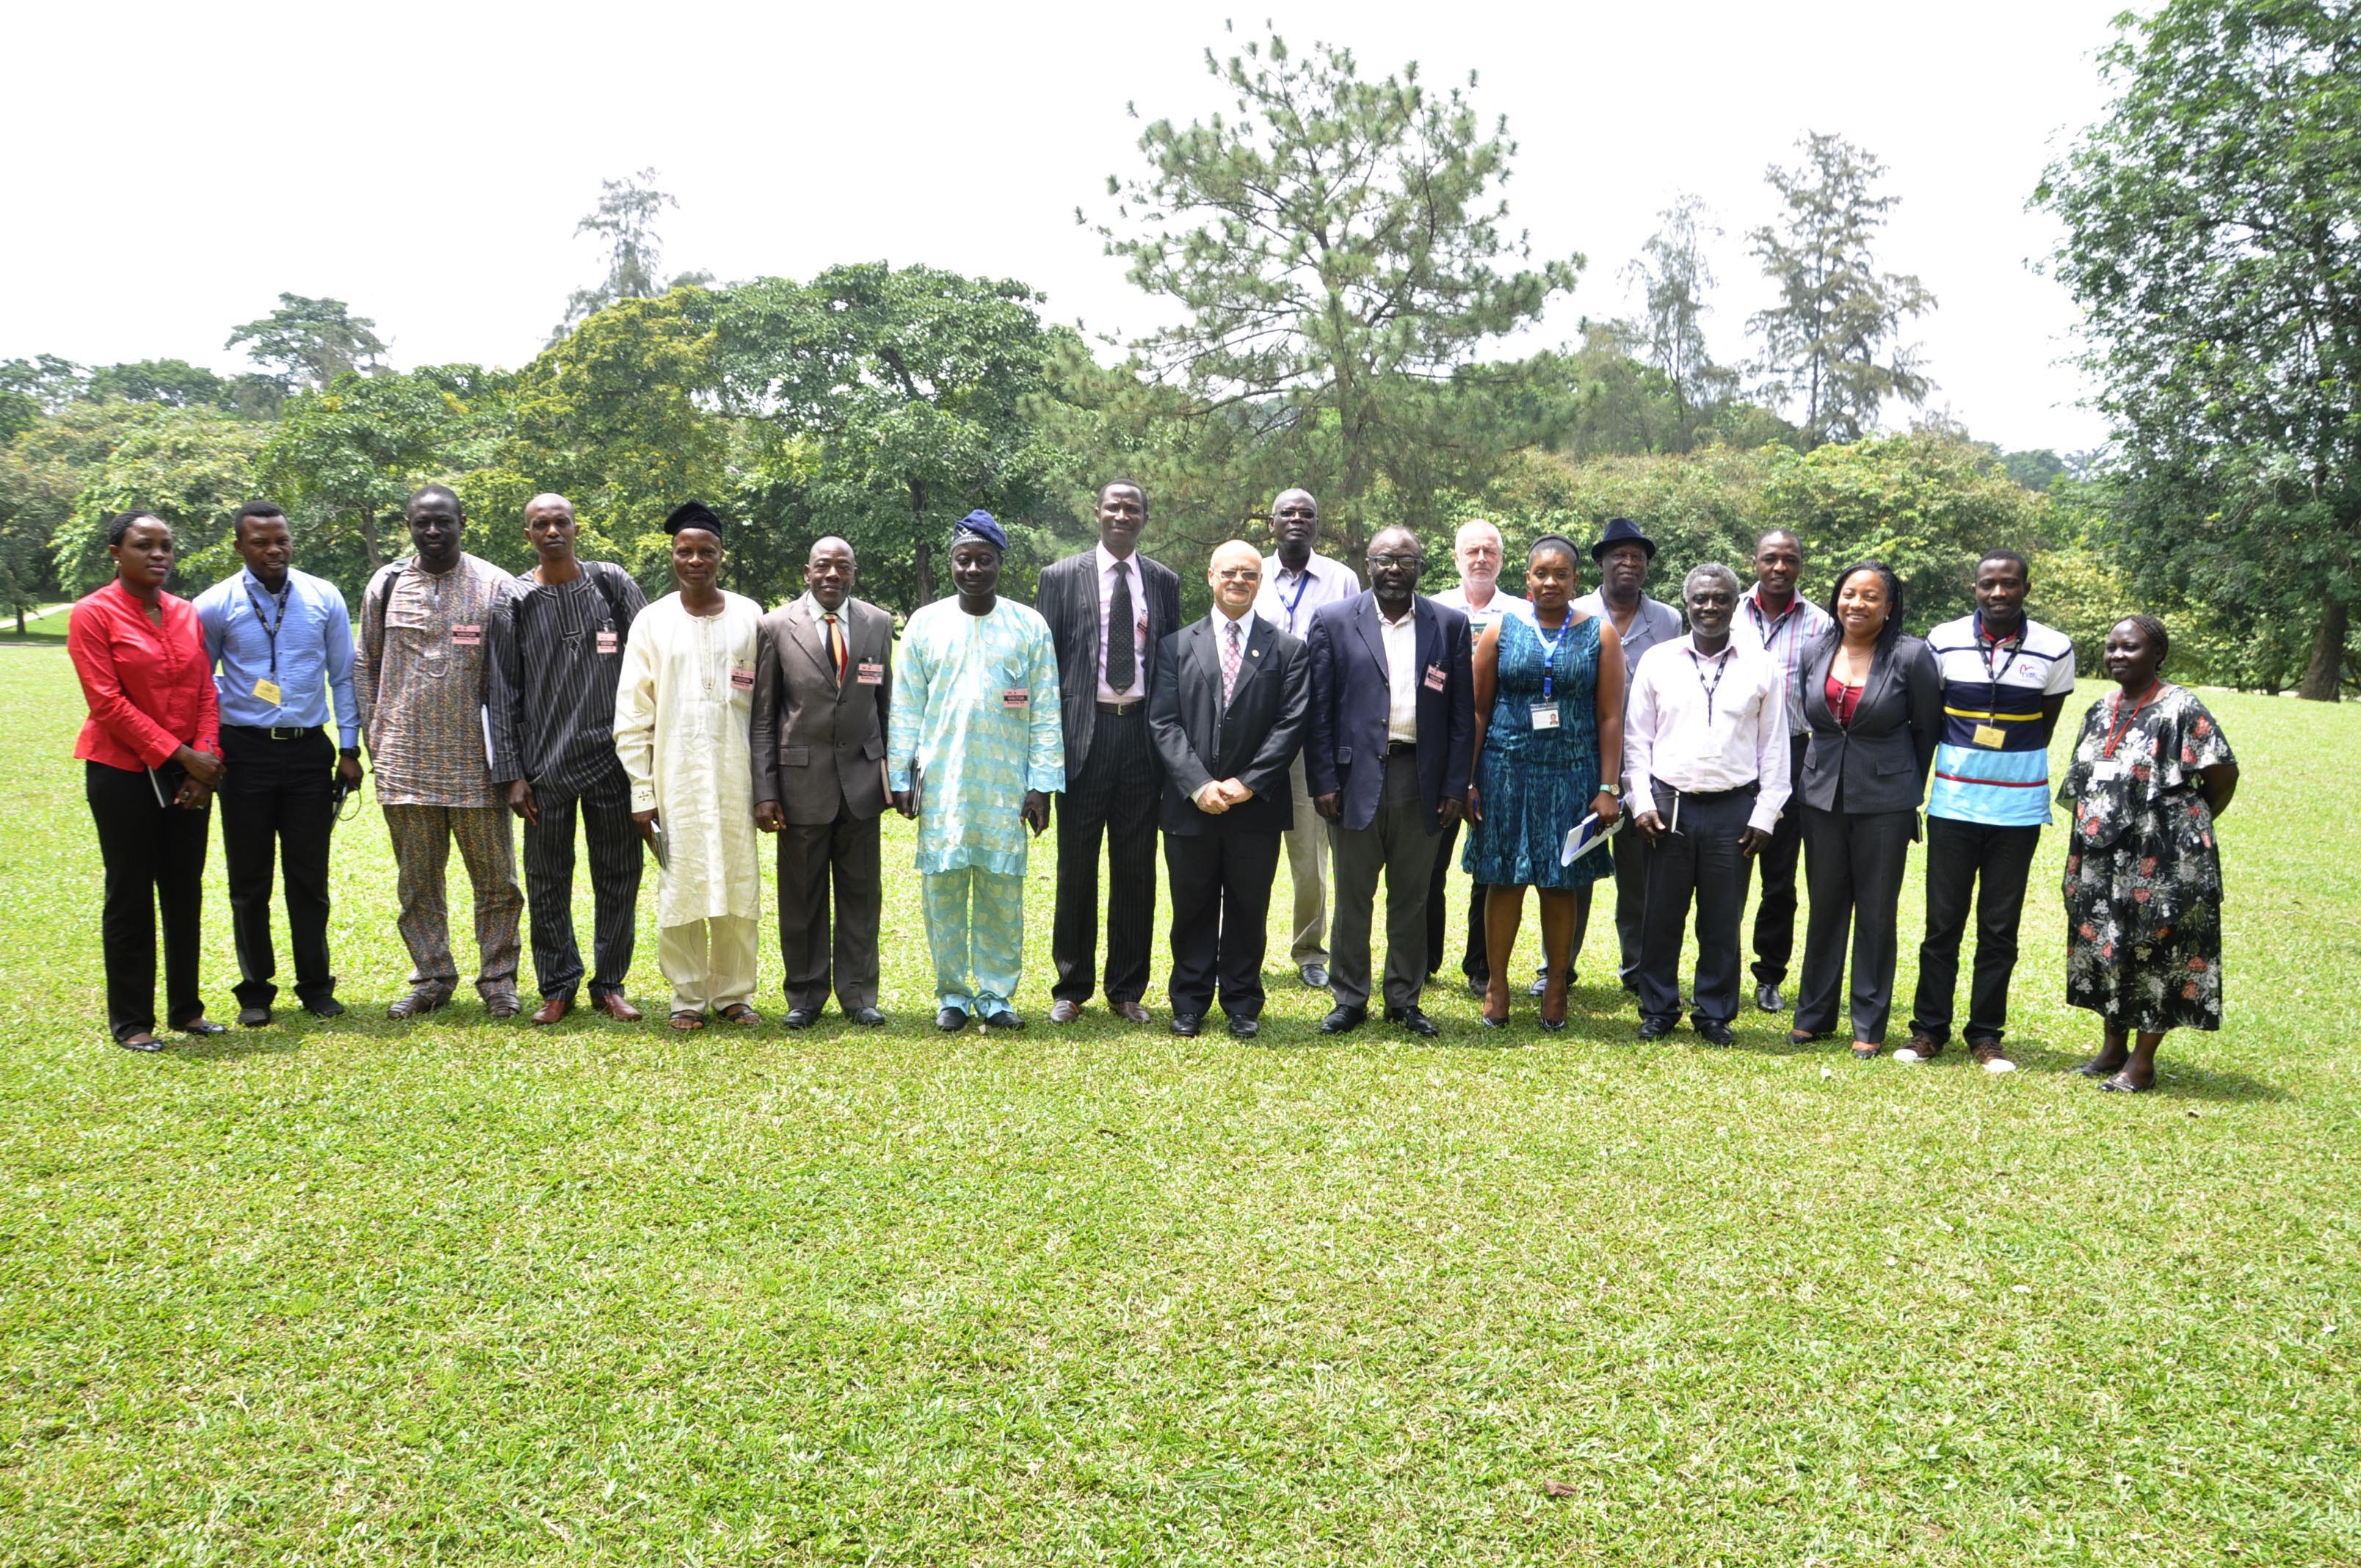 The delegates from the State of Osun (third-eighth and eleventh from left) flanked by IITA scientists and members of staff.